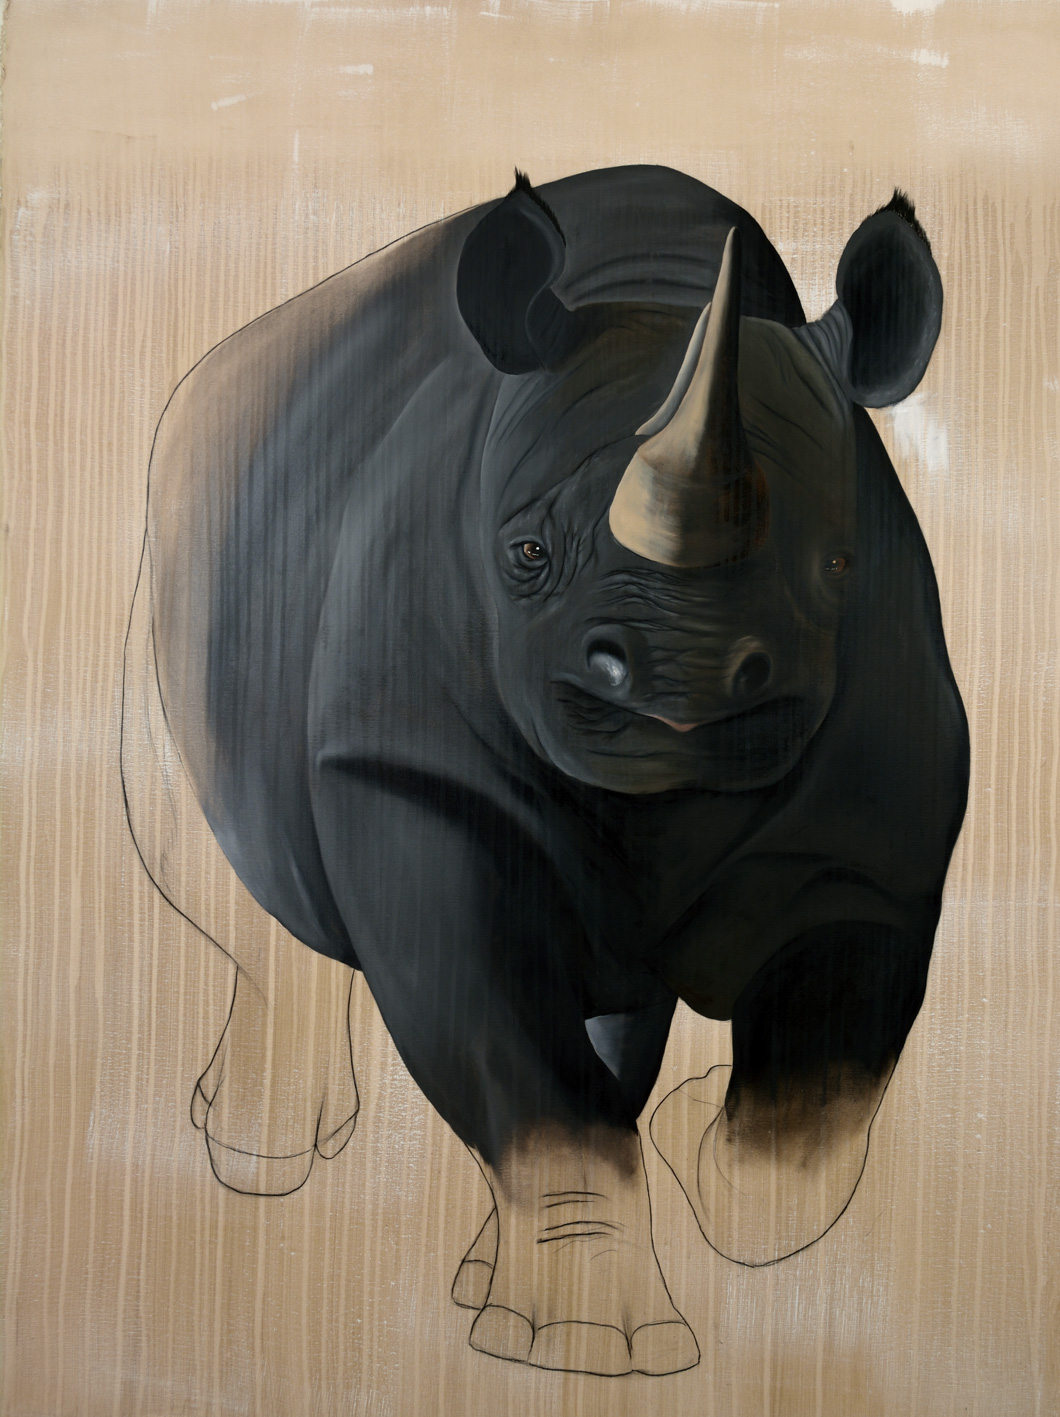 RHINOCEROS-NOIR black-rhino-diceros-bicornisdelete-threatened-endangered-extinction Thierry Bisch painter animals painting art decoration hotel design interior luxury nature biodiversity conservation